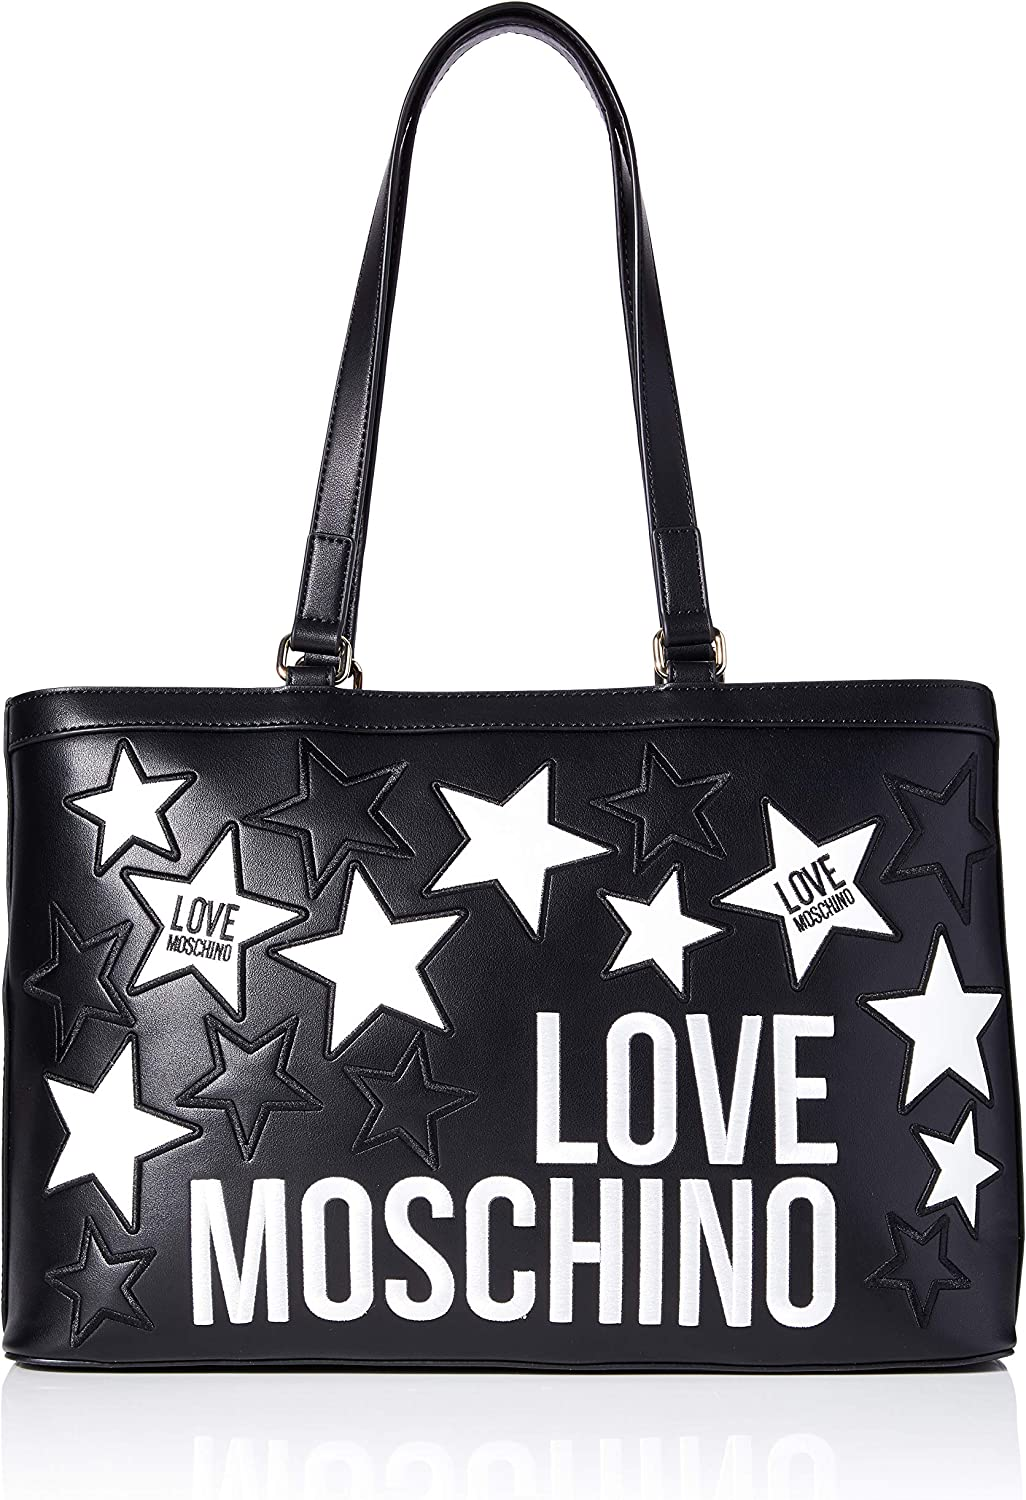 Love Moschino Borsa Donna Ecopelle Nero Stampa Love